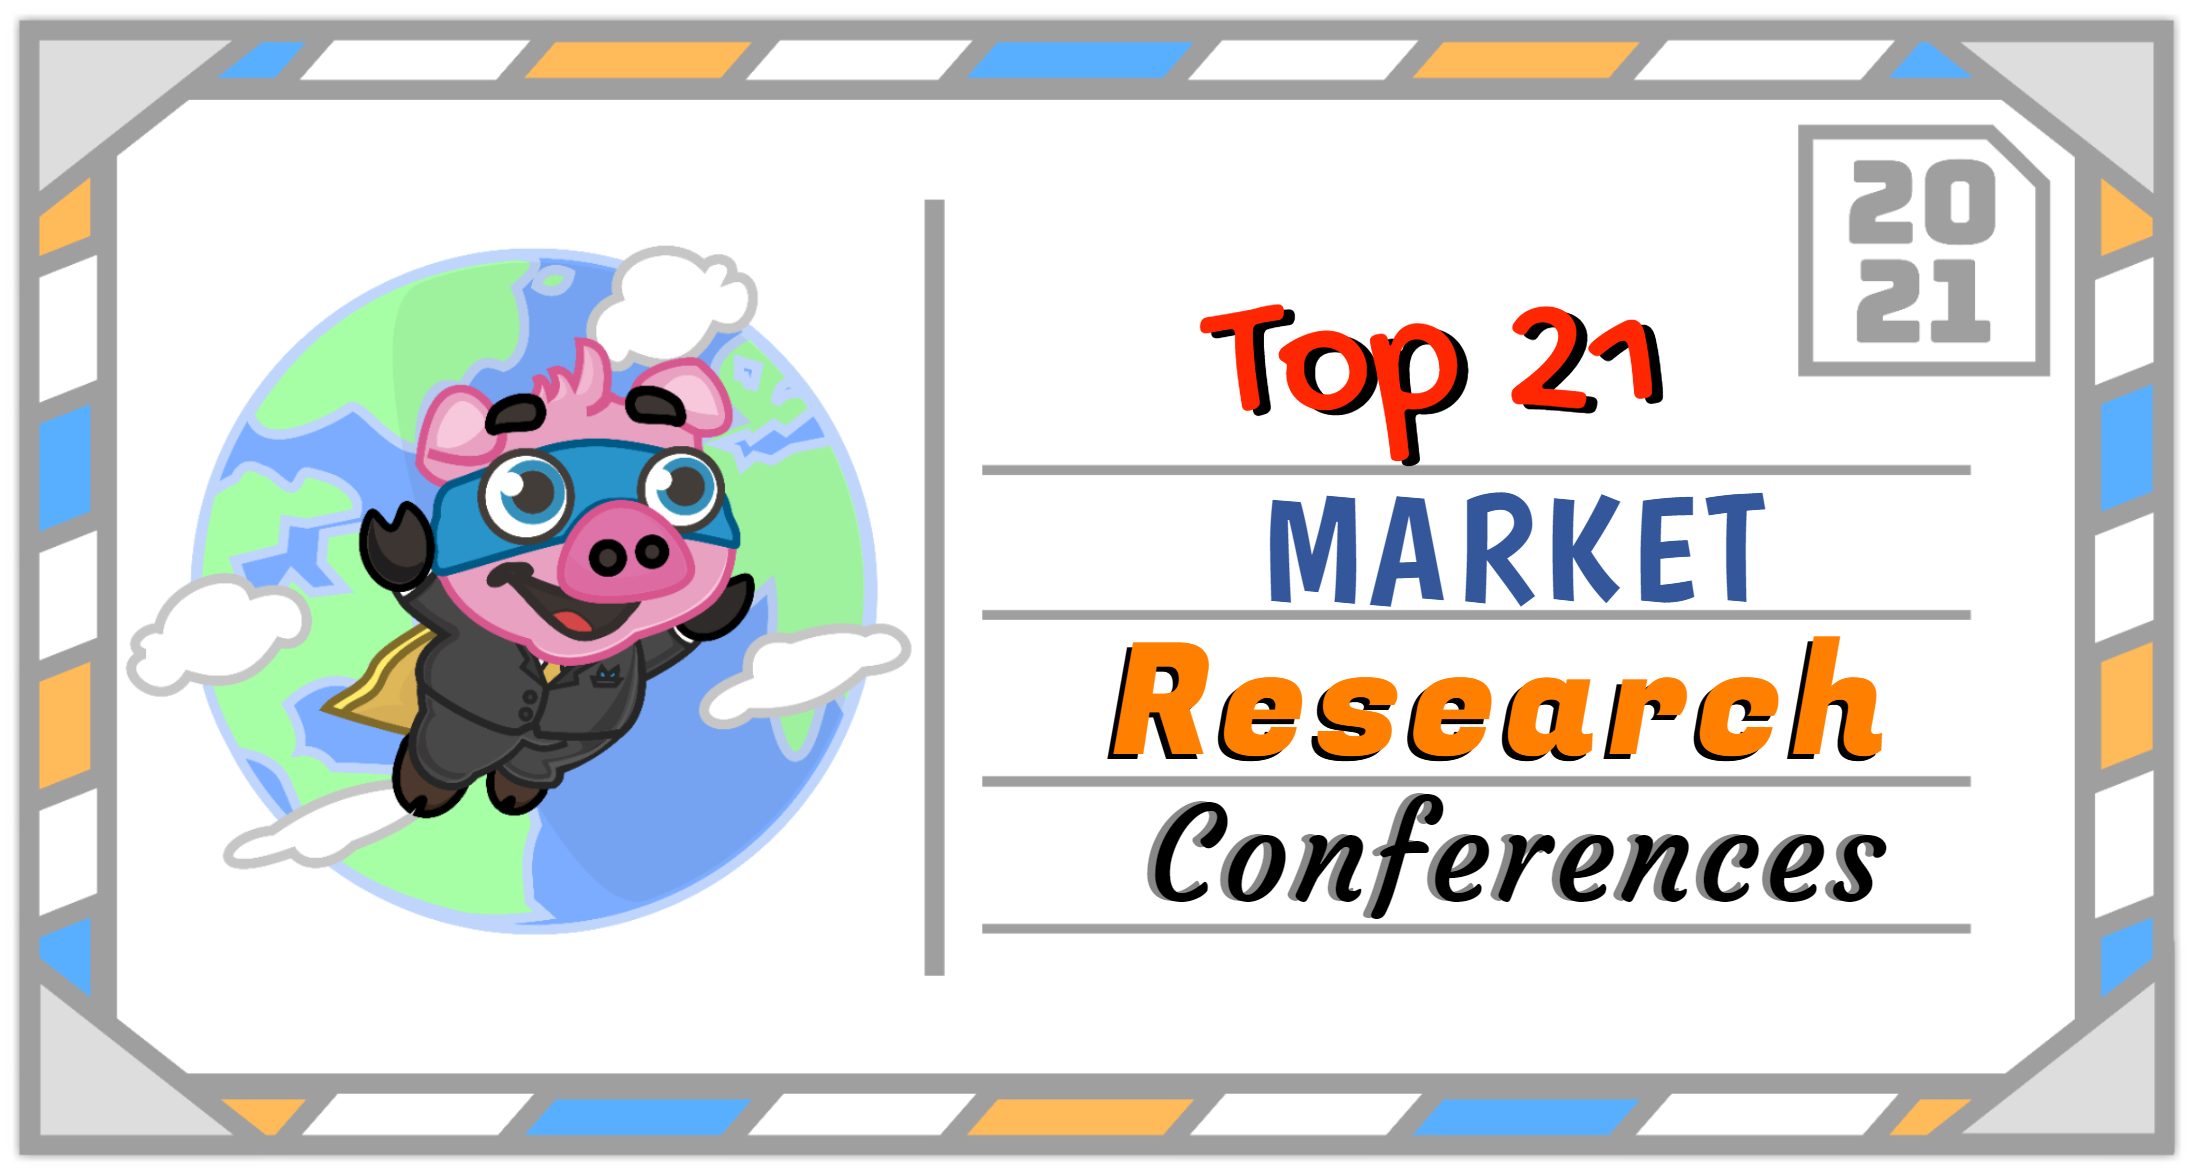 The Top 21 Market Research Conferences to Attend in 2021